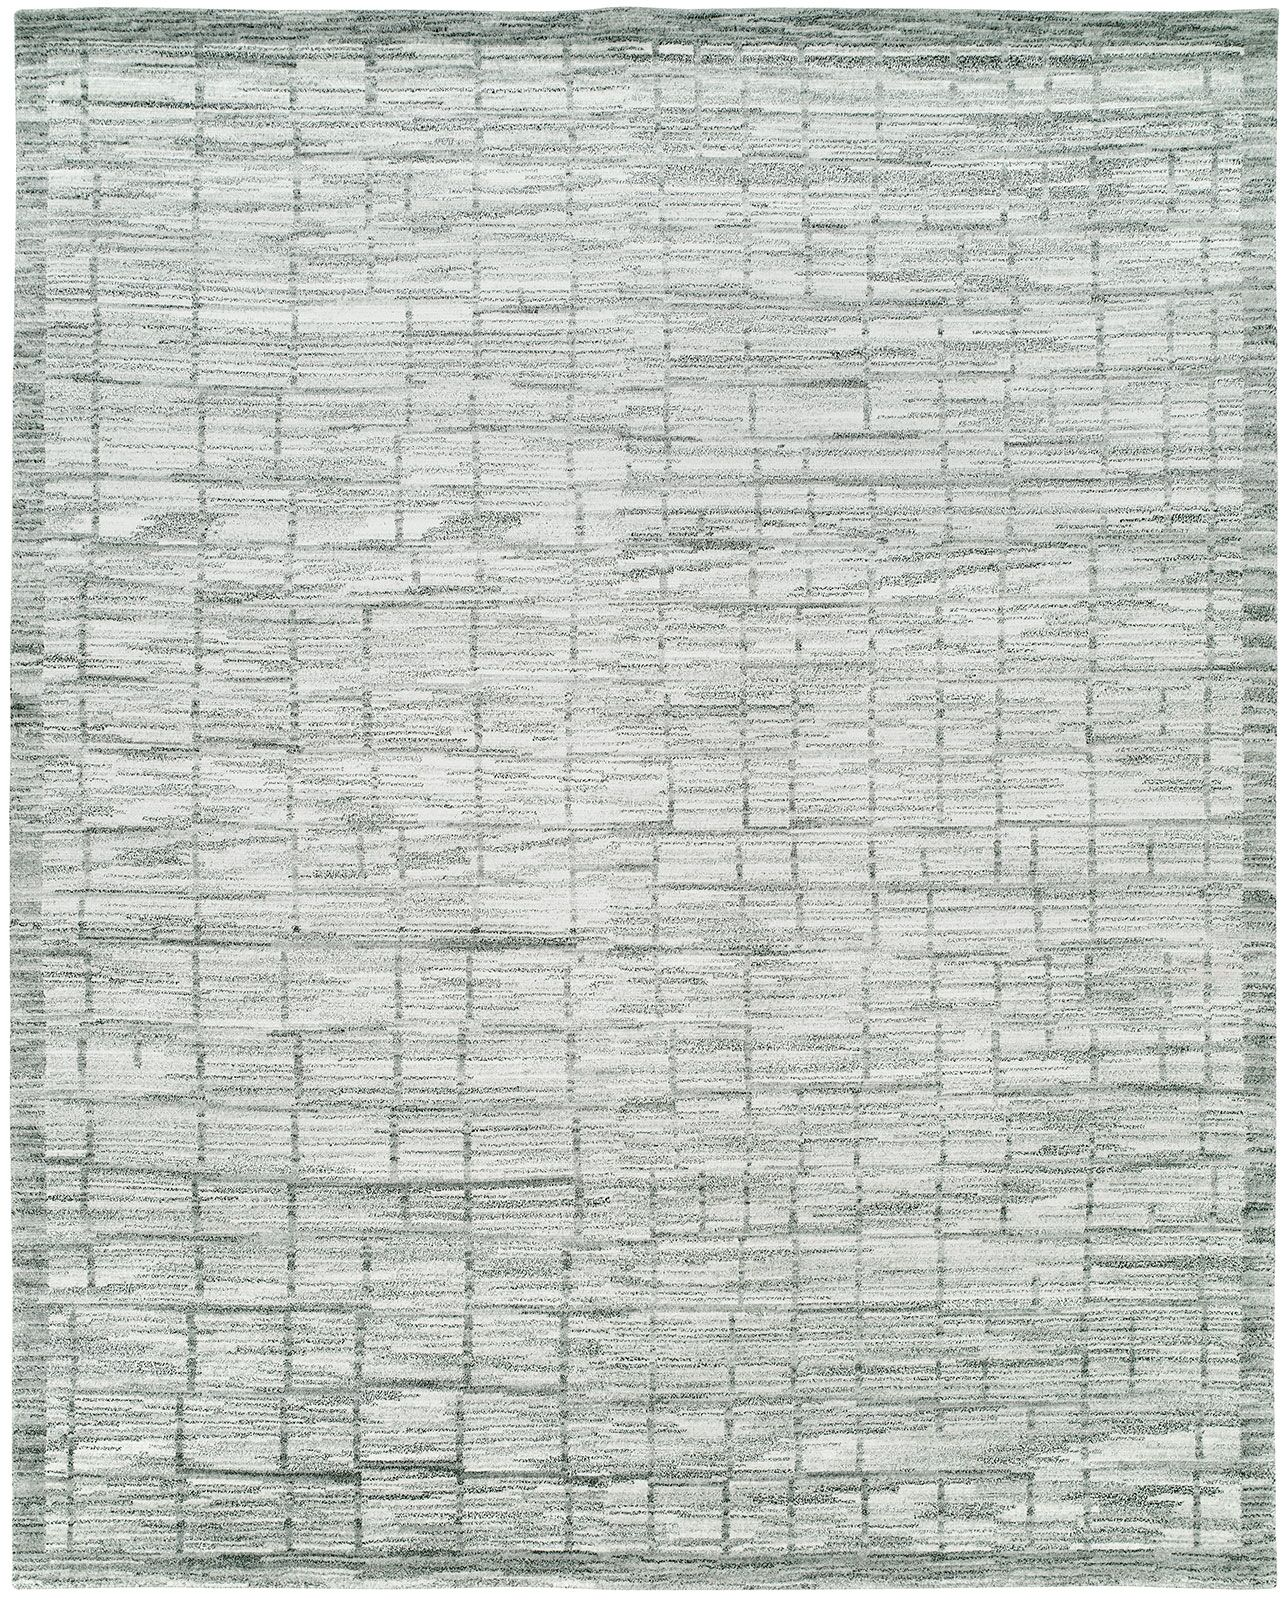 Shonda Hand-Knotted Wool Gray/Ivory Area Rug Rug Size: Rectangle 6' x 9'